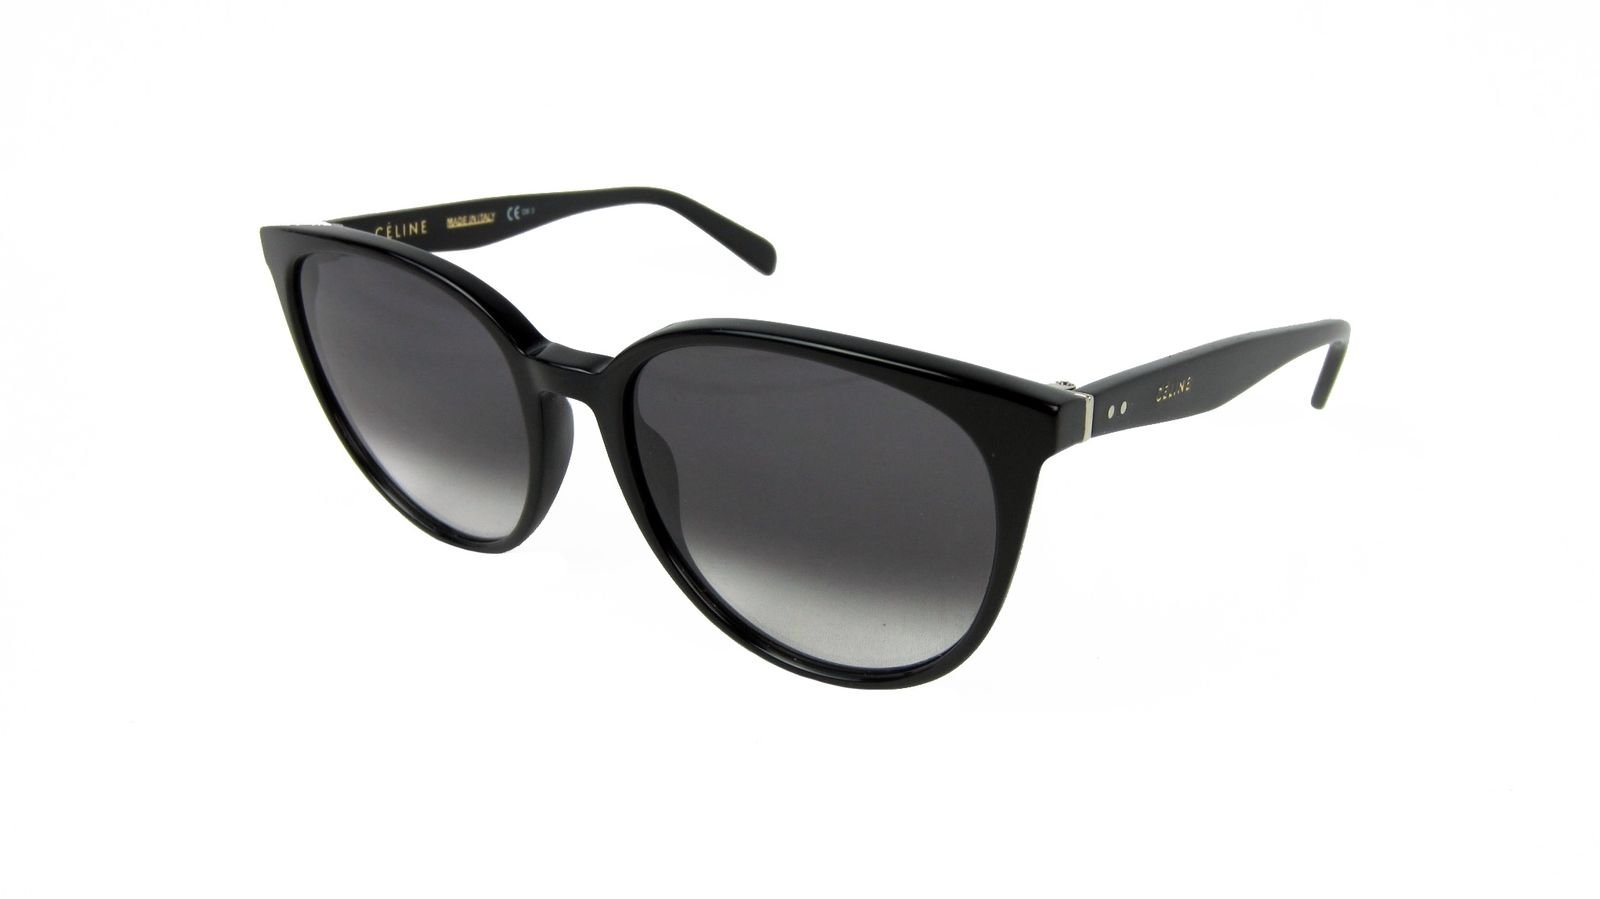 d58666cc01 Details about Celine Thin Mary Large Round Sunglasses Black Frame Dark Grey  Gradient 55mm